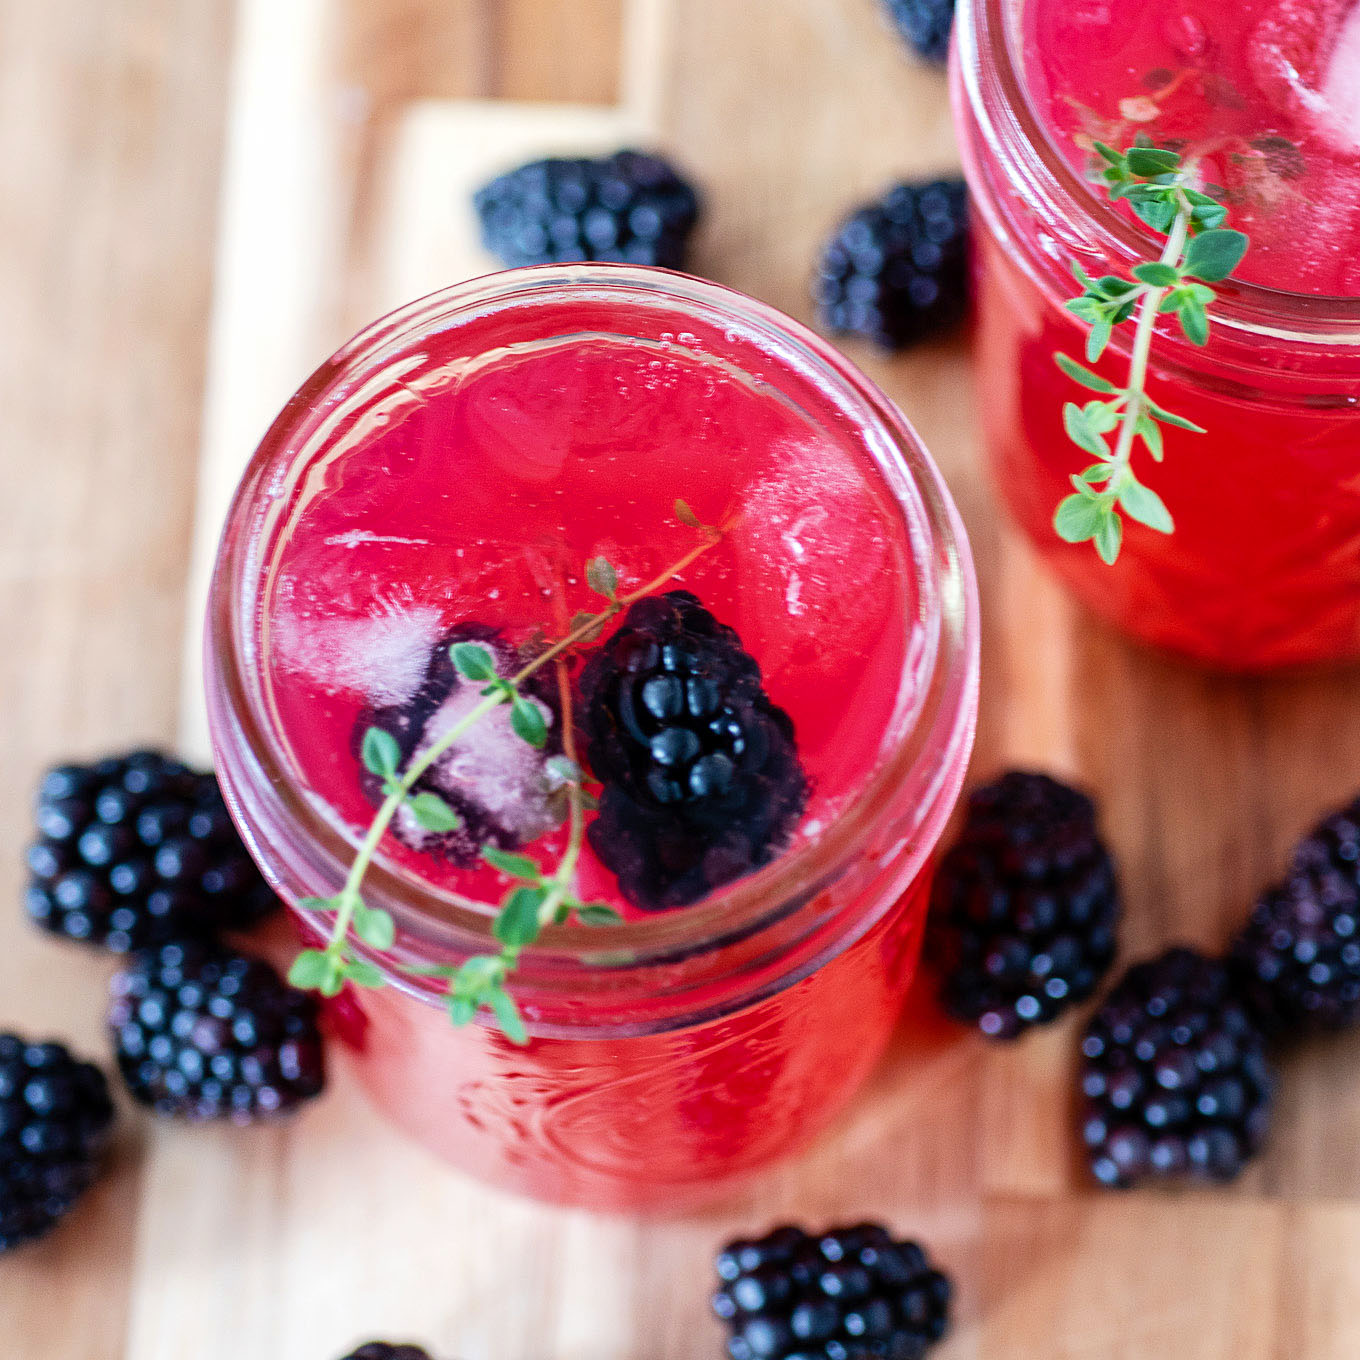 An overhead view of a glass of blackberry thyme collins garnished with thyme and fresh blackberries